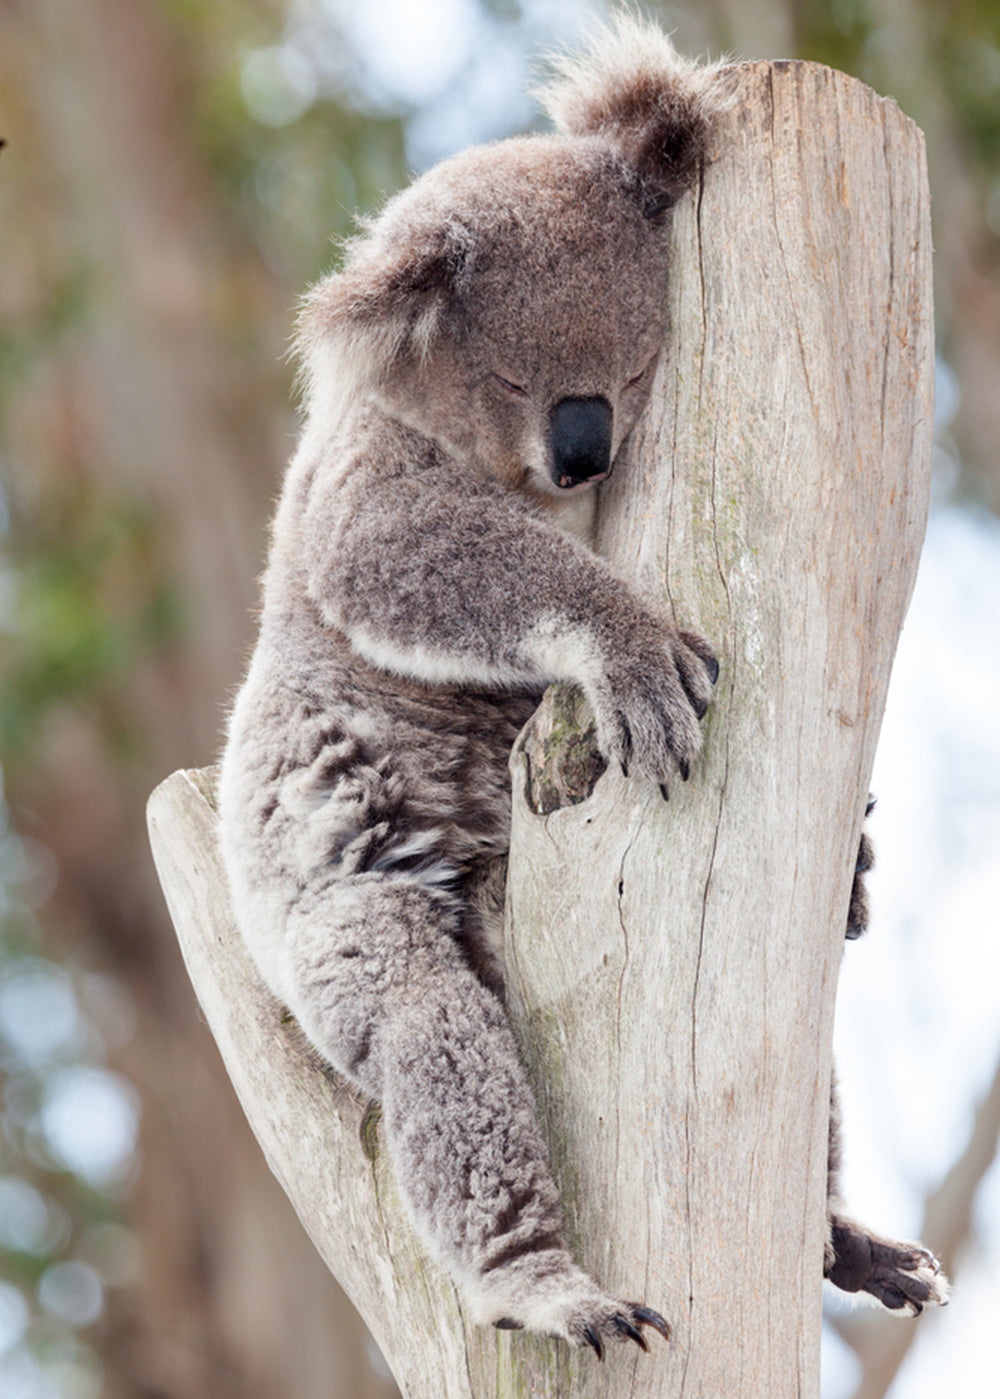 koala sleeping on a tree